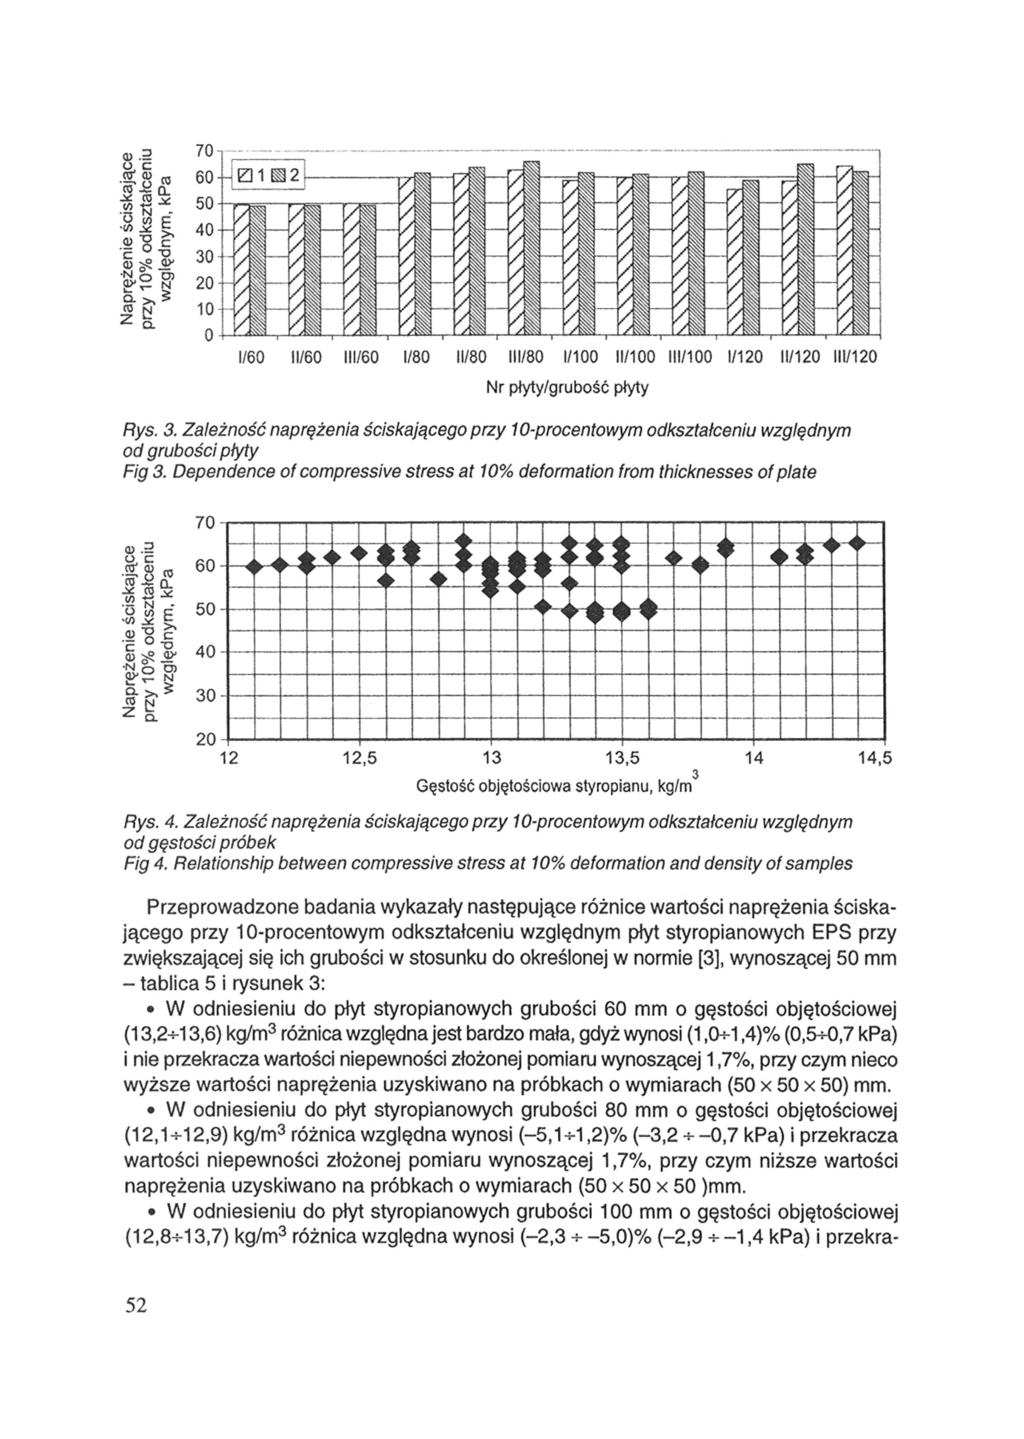 Rys. 3. Zależność naprężenia ściskającego przy 10-procentowym odkształceniu względnym od grubości płyty Fig 3. Dependence of compressive stress at 10% deformation from thicknesses of plate Rys. 4.